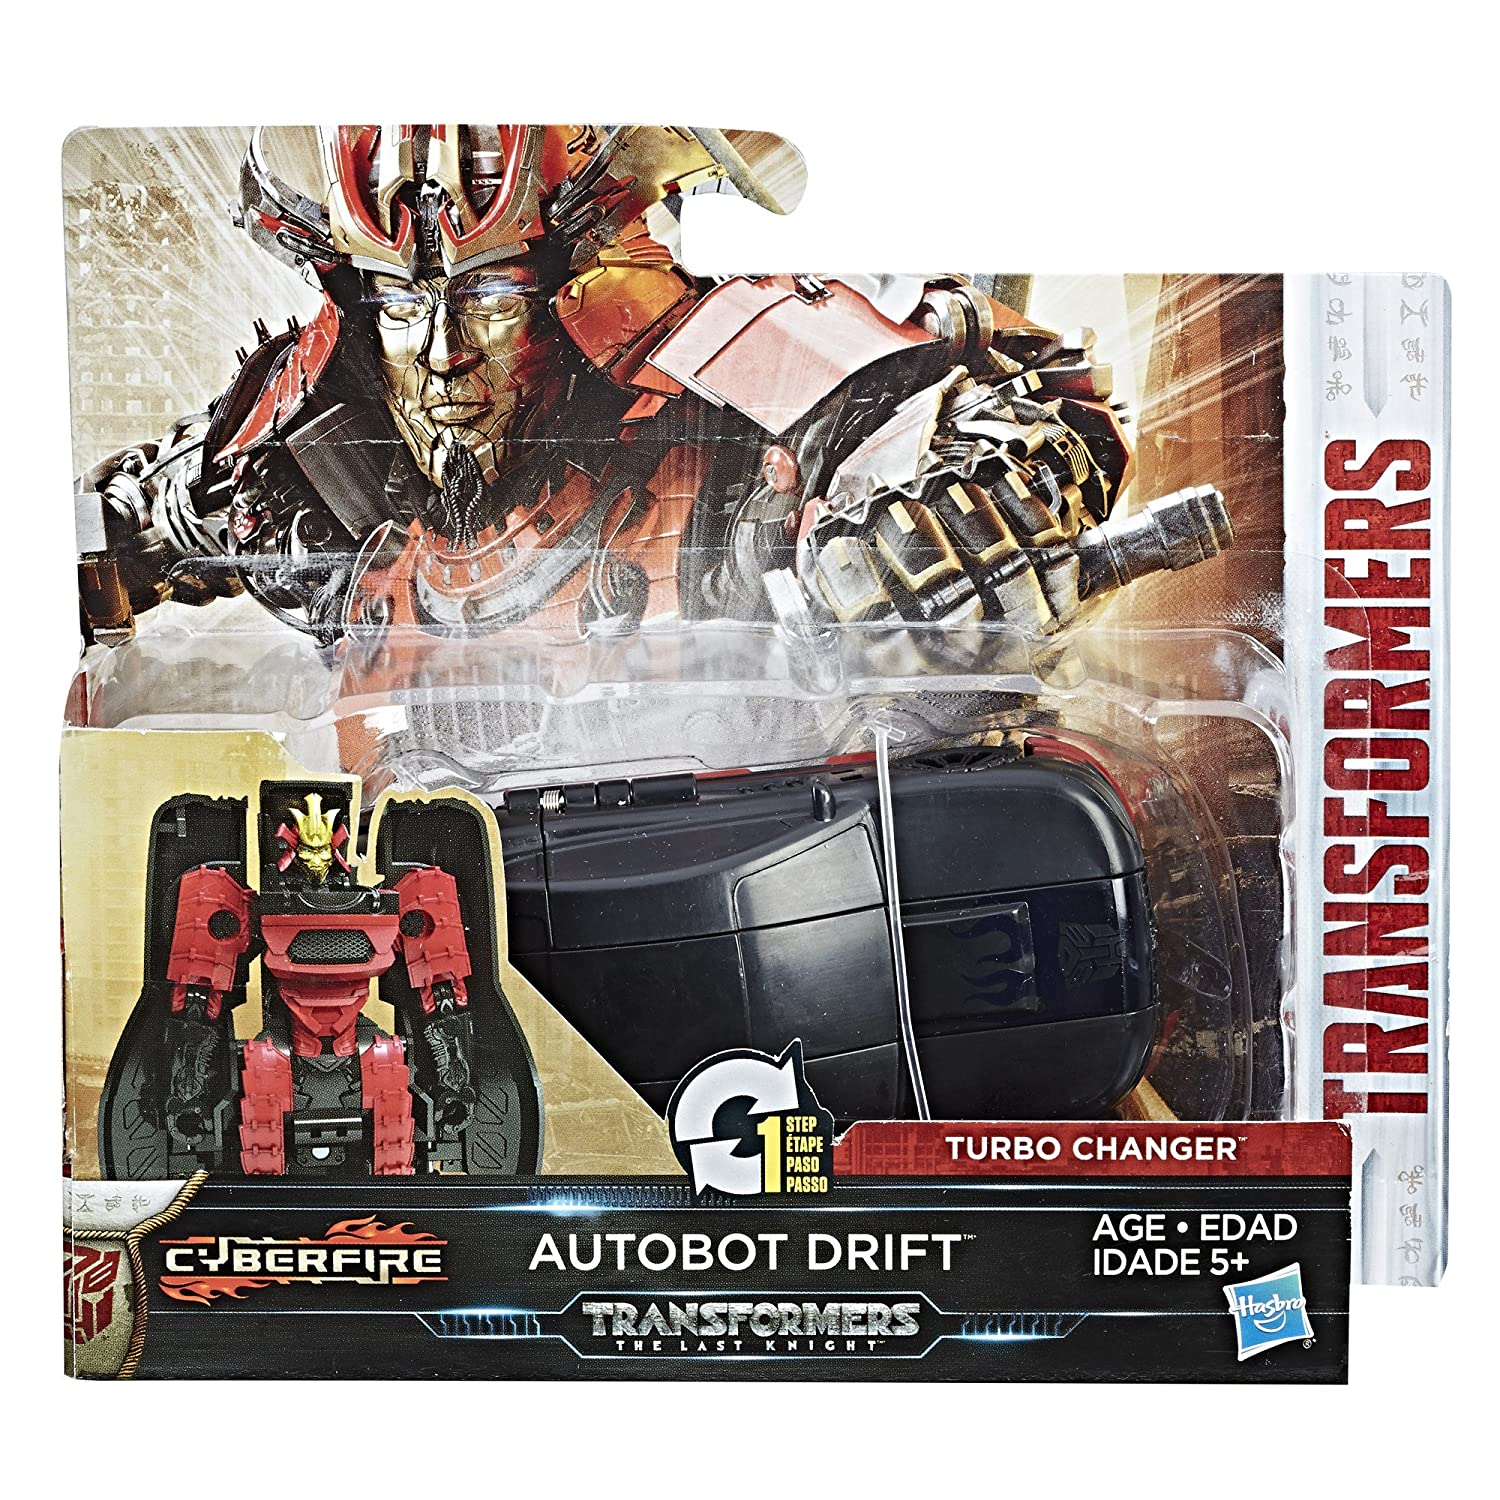 Amazon.com: Transformers: The Last Knight 1-Step Turbo Changer Autobot Drift: Toys & Games